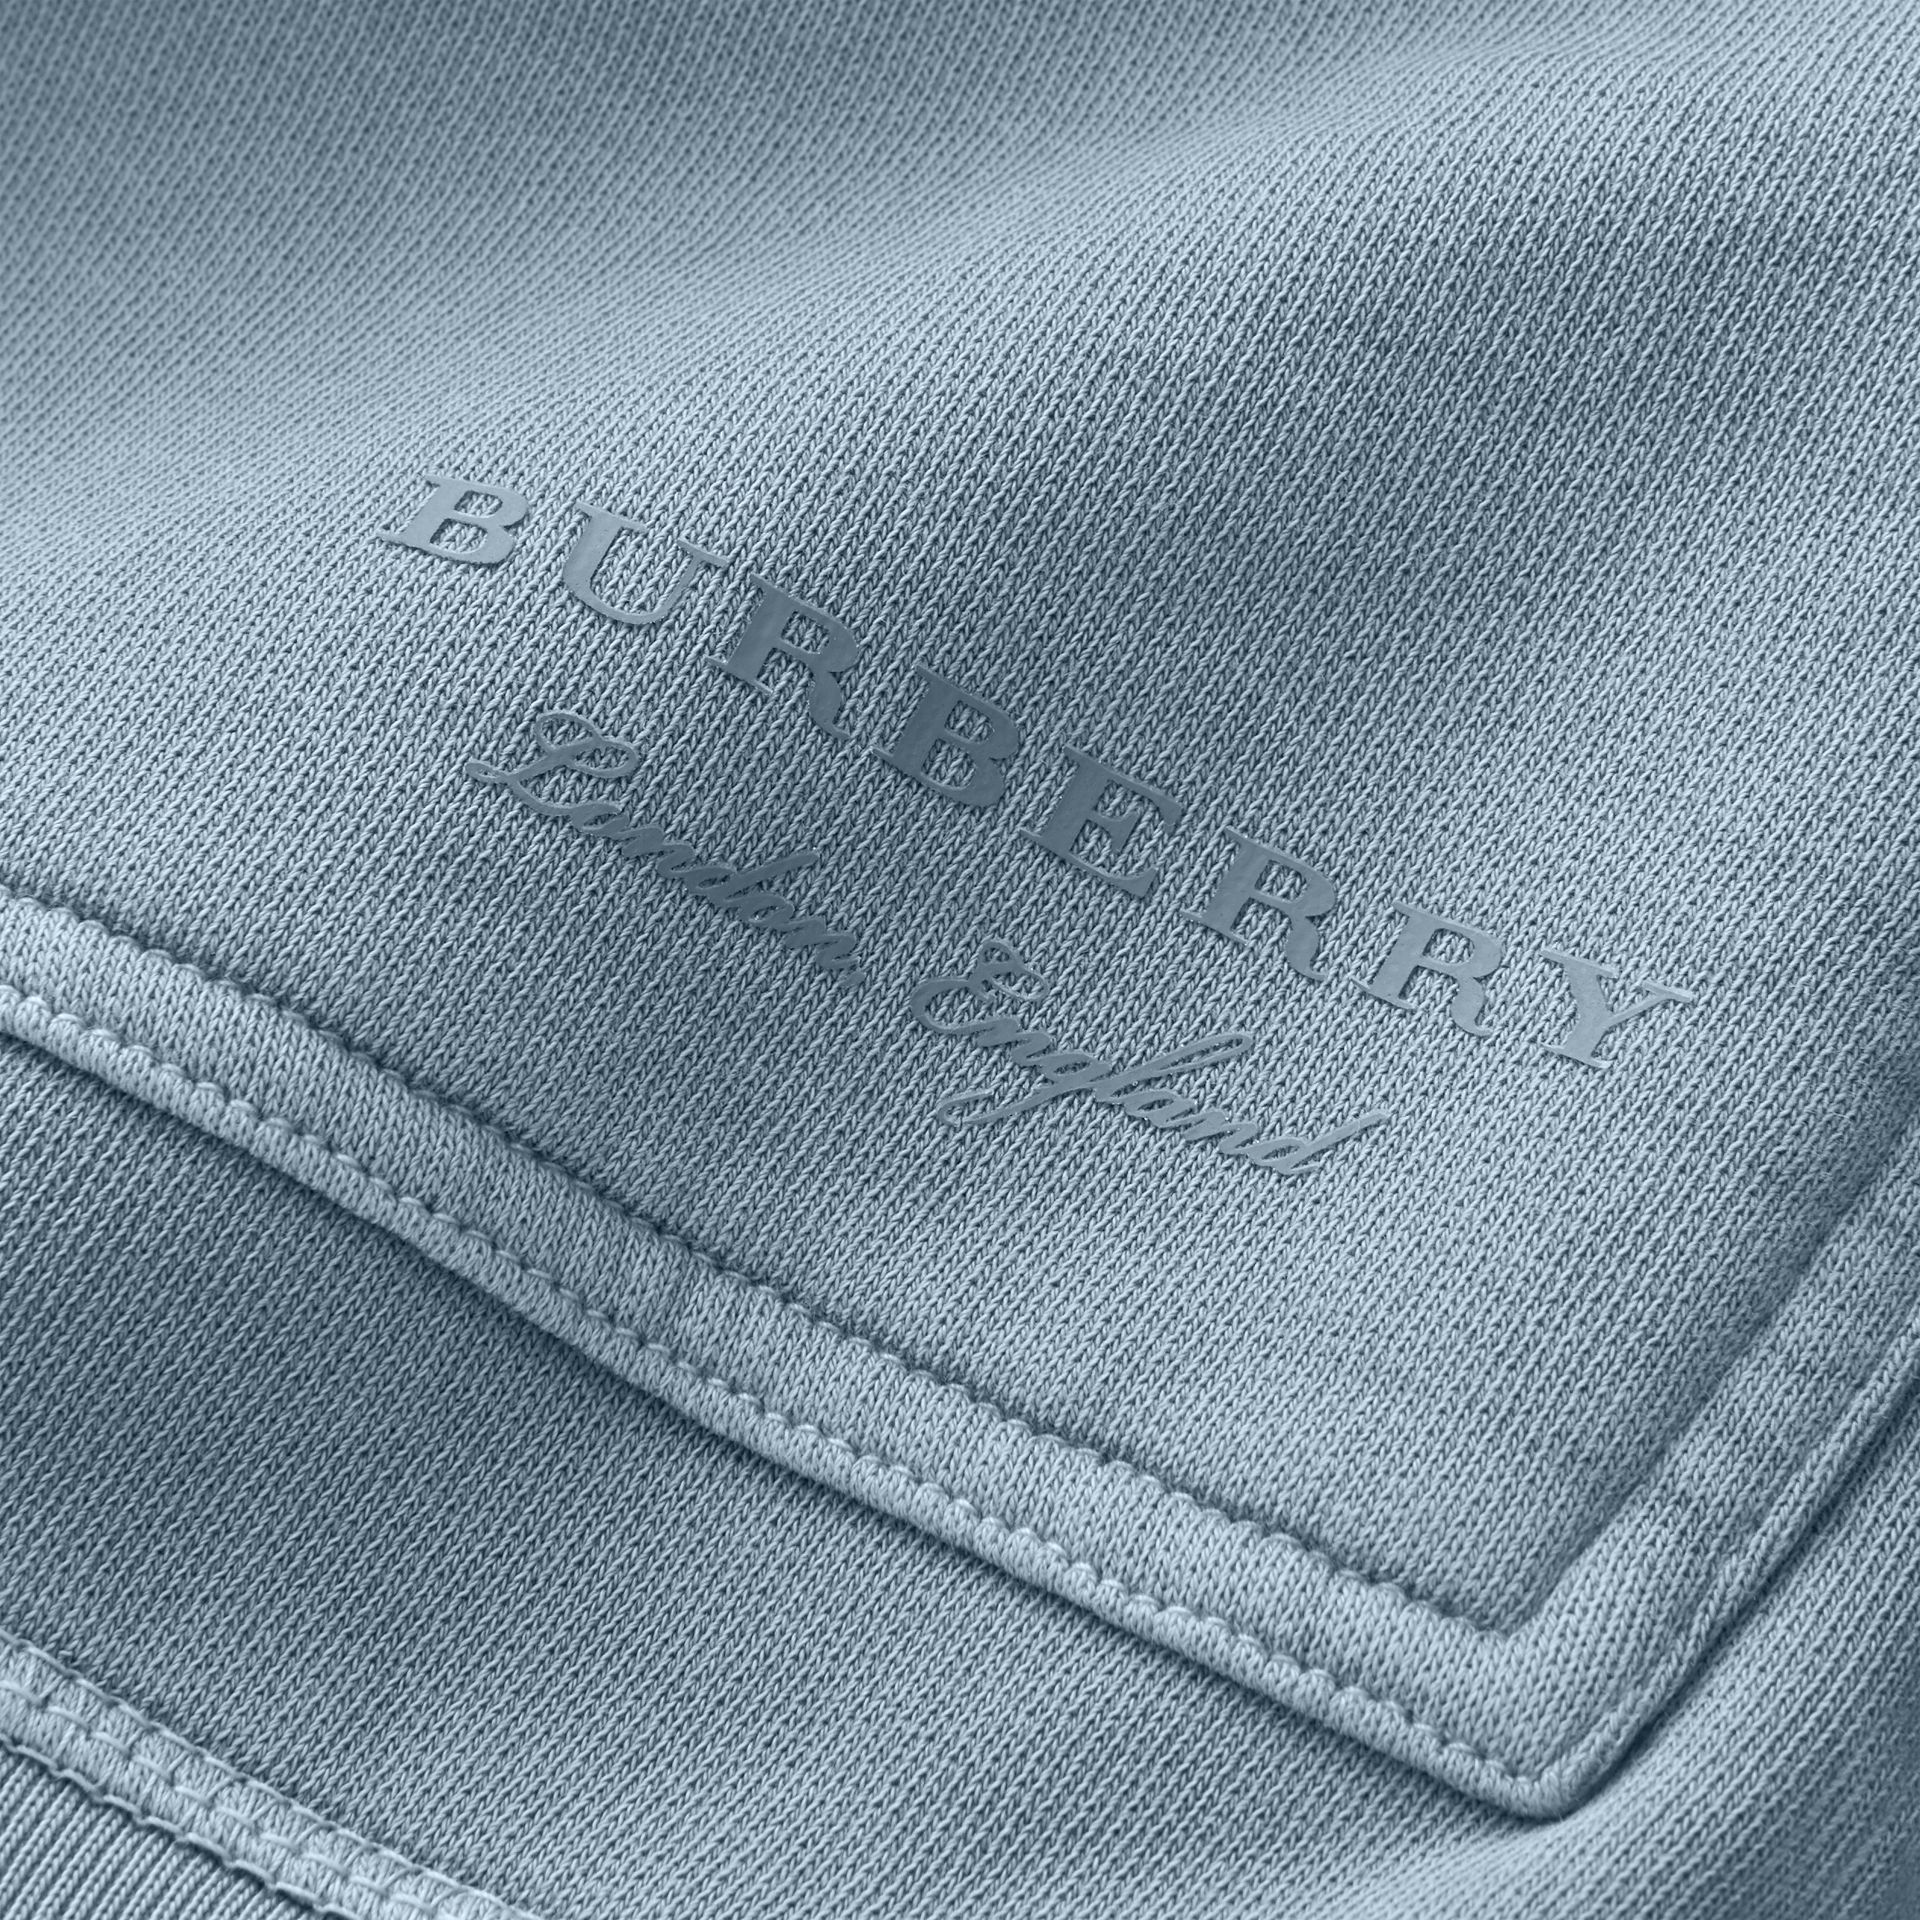 Unisex Pigment-dyed Cotton Oversize Sweatshirt in Dusty Blue - Men | Burberry Hong Kong - gallery image 2